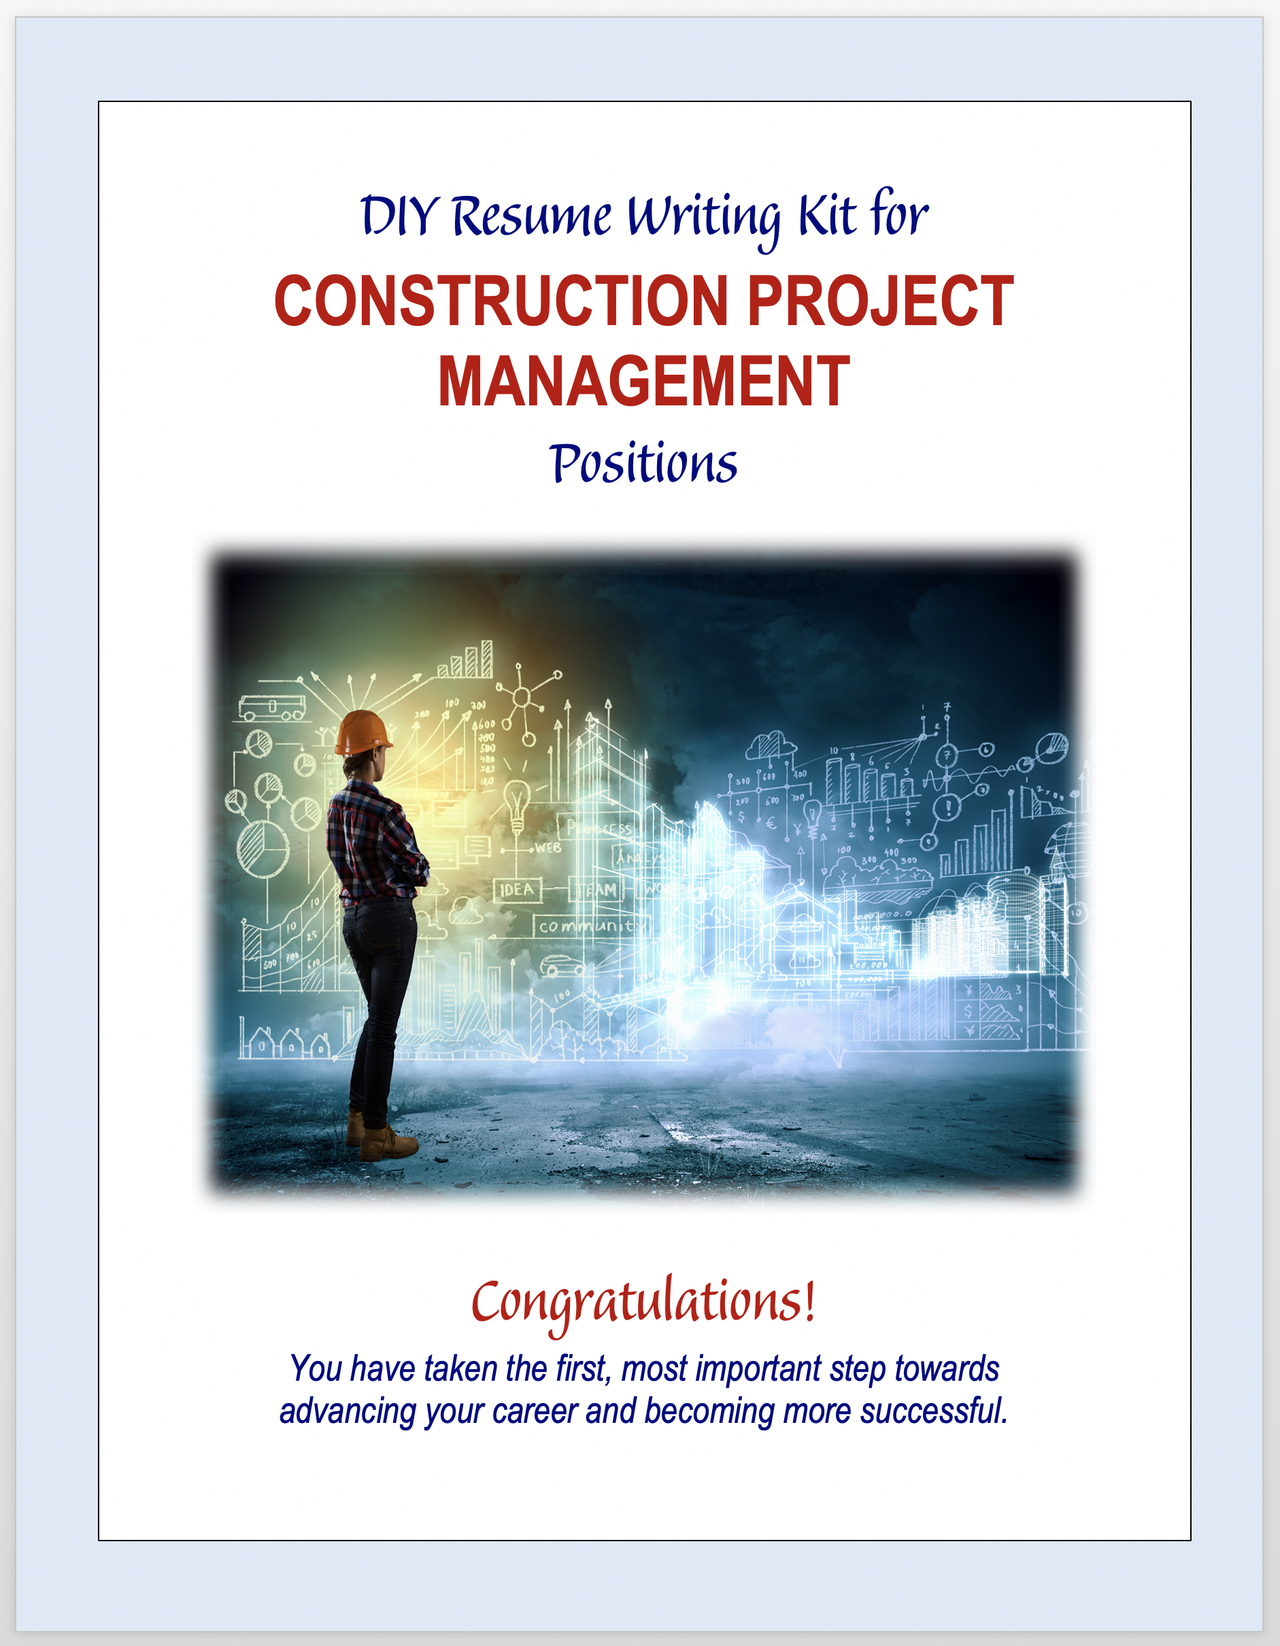 construction project management.png